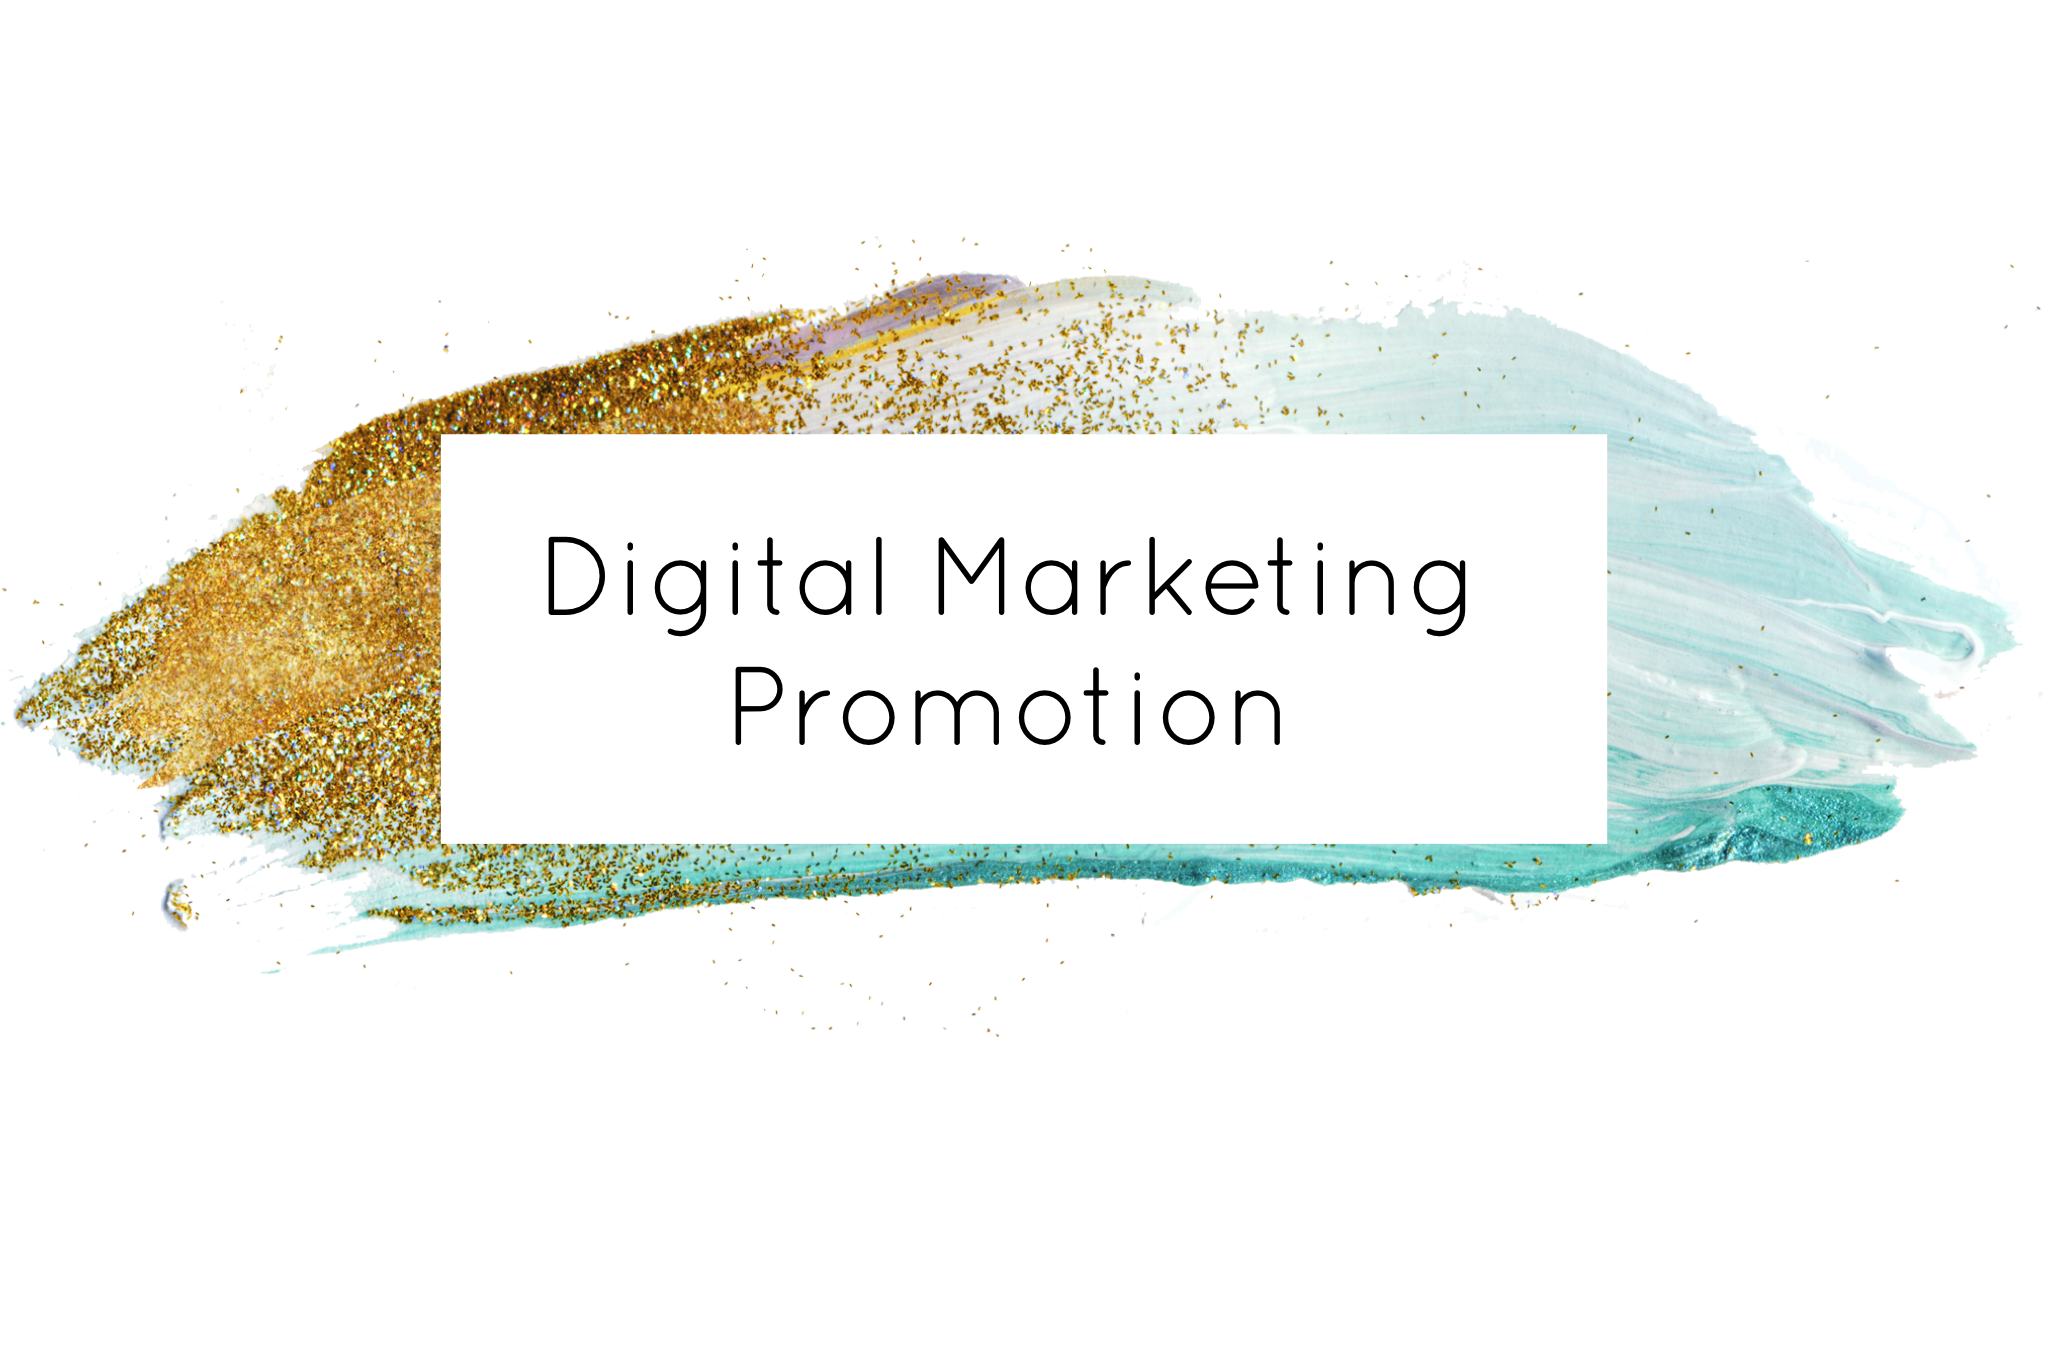 Digital Marketing Promotion